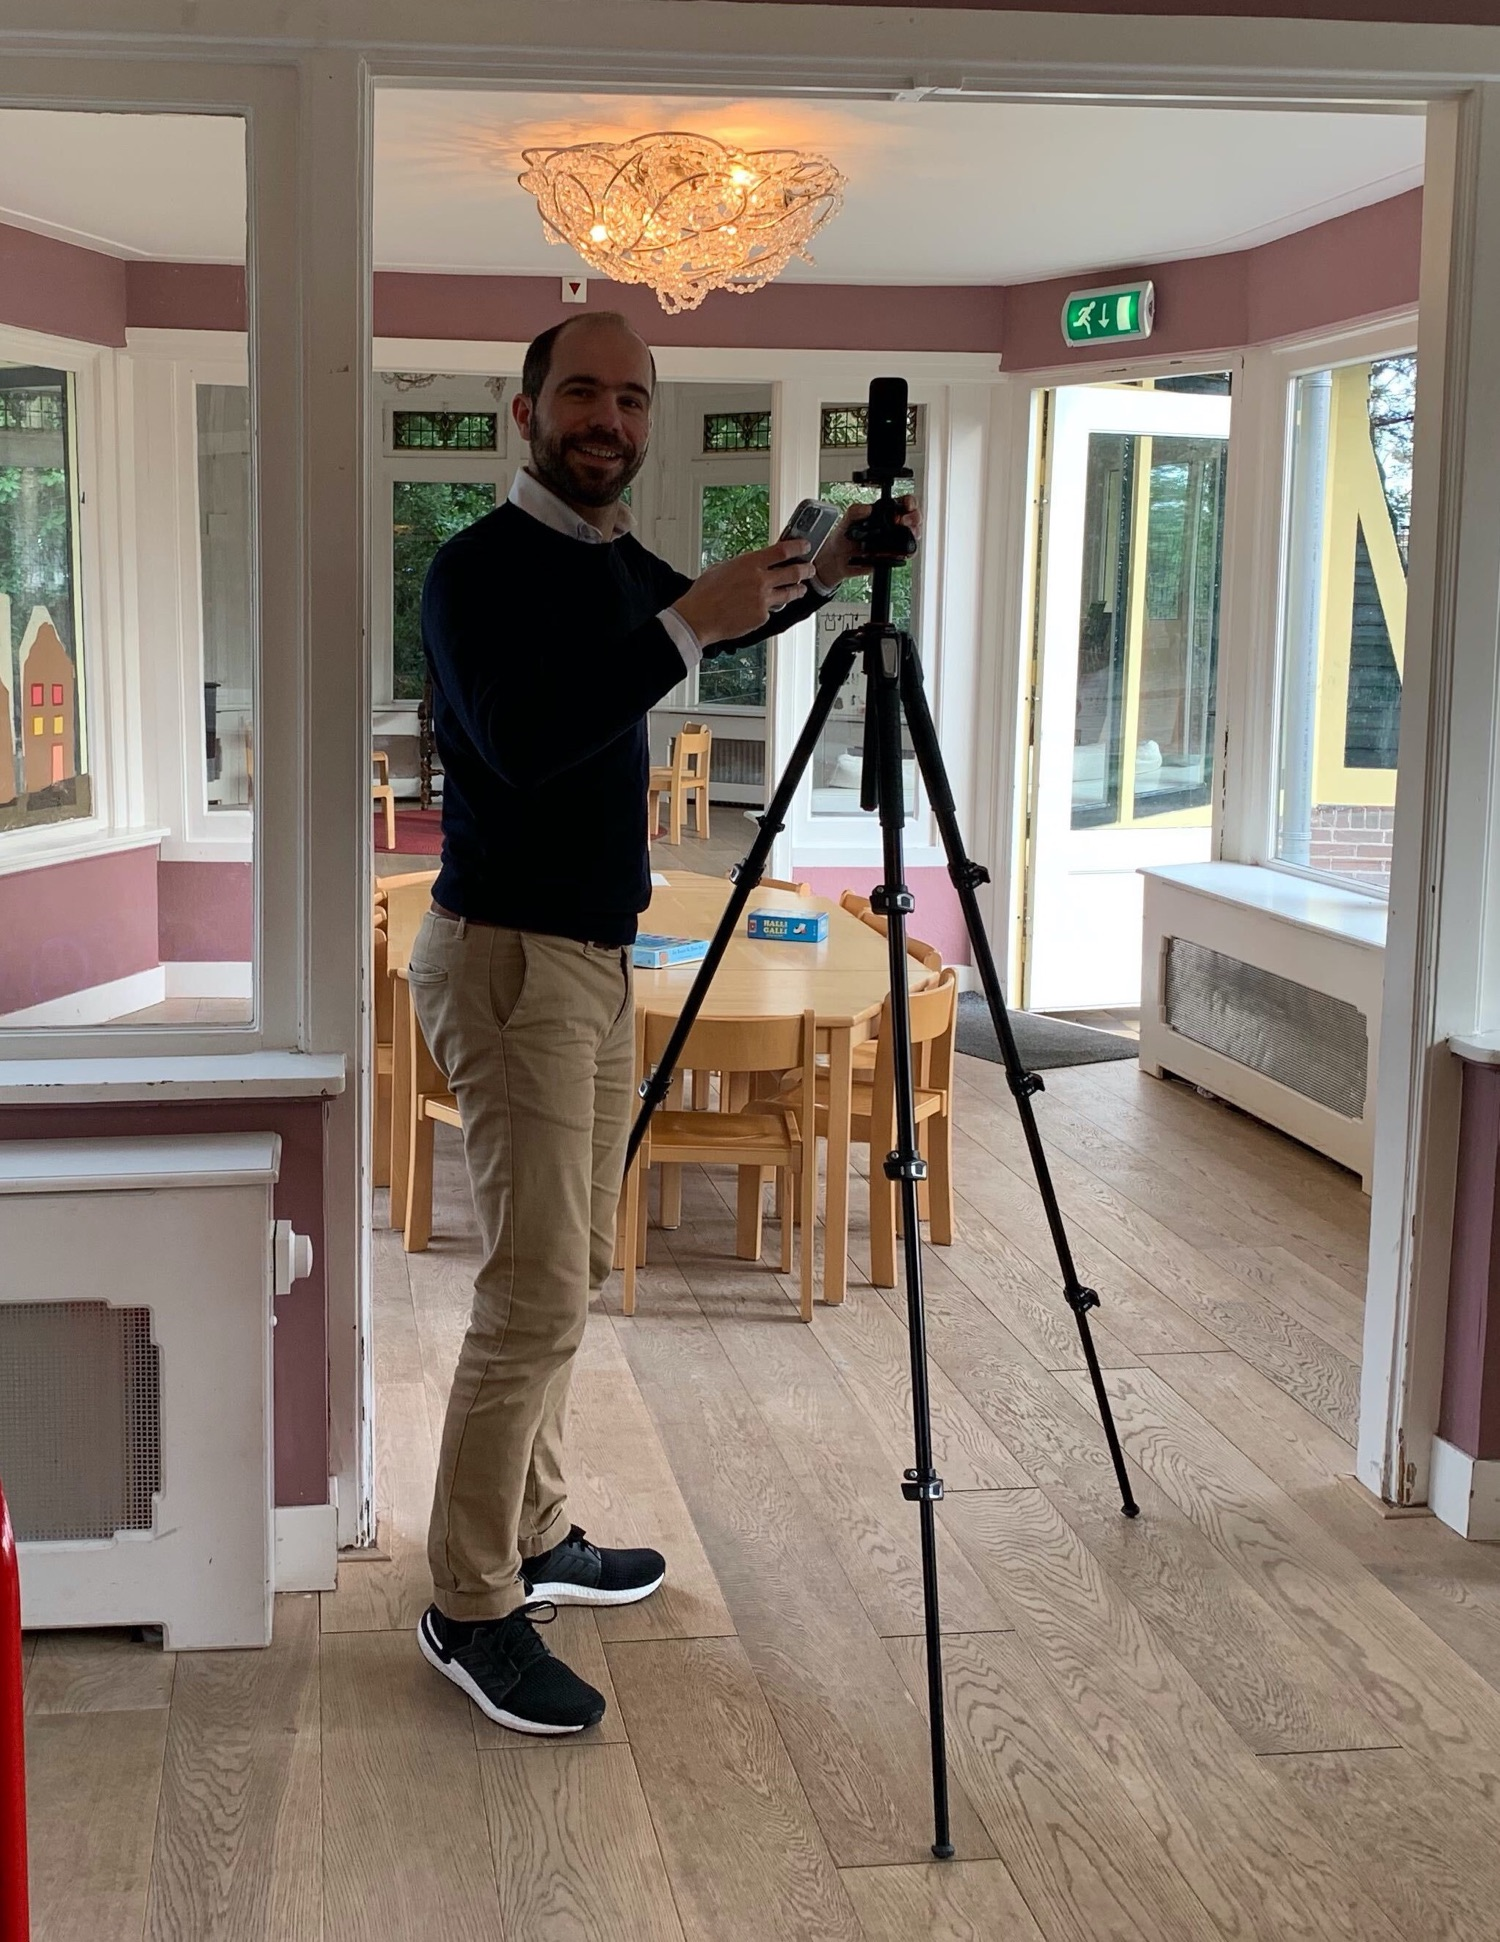 Wouter takes 360 degree photo at a Procademy customer